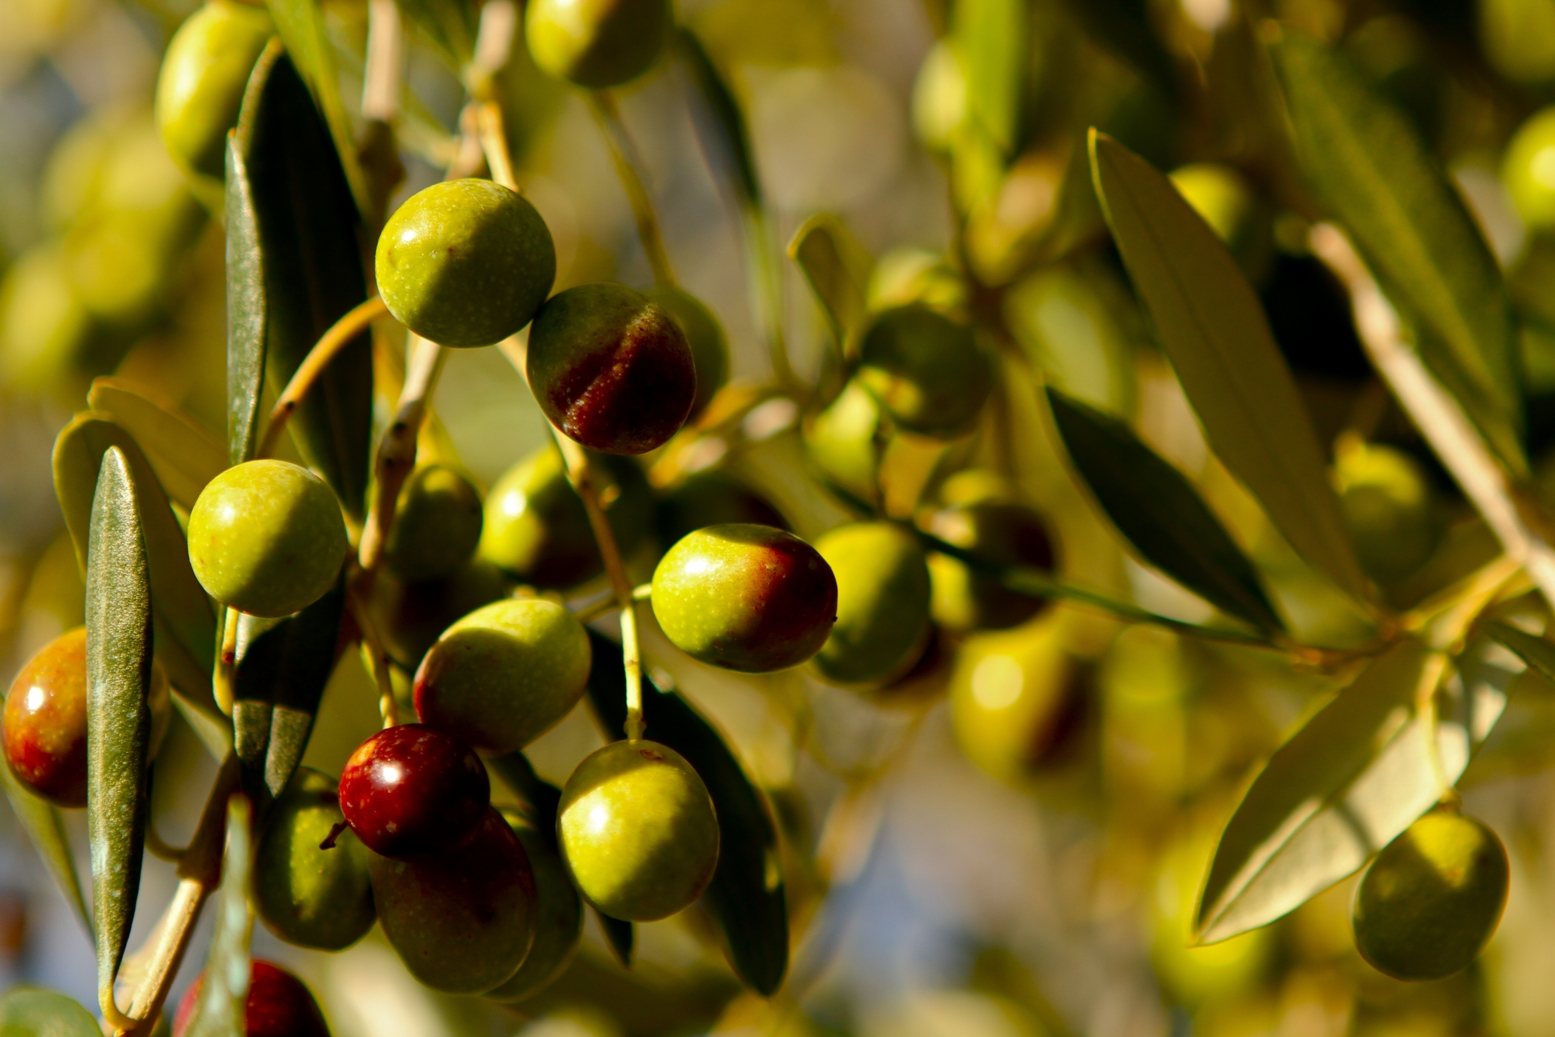 Our olives come from around the world, and are processed in two mills: Austrailia and Tunisia.